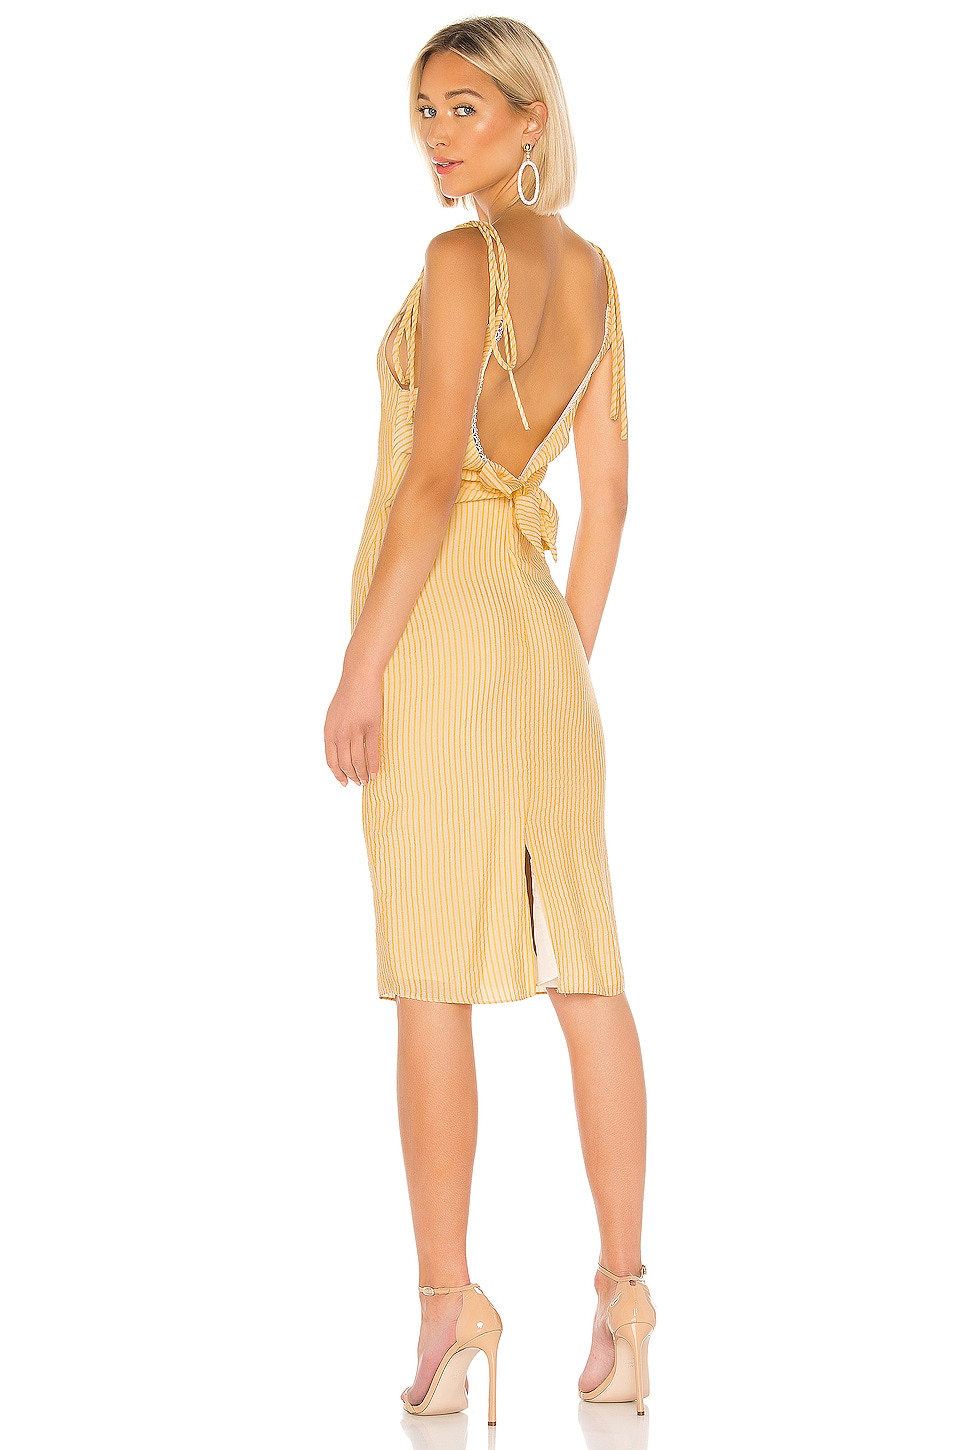 LPA Tie Back Tank Dress in Ivory and Yellow